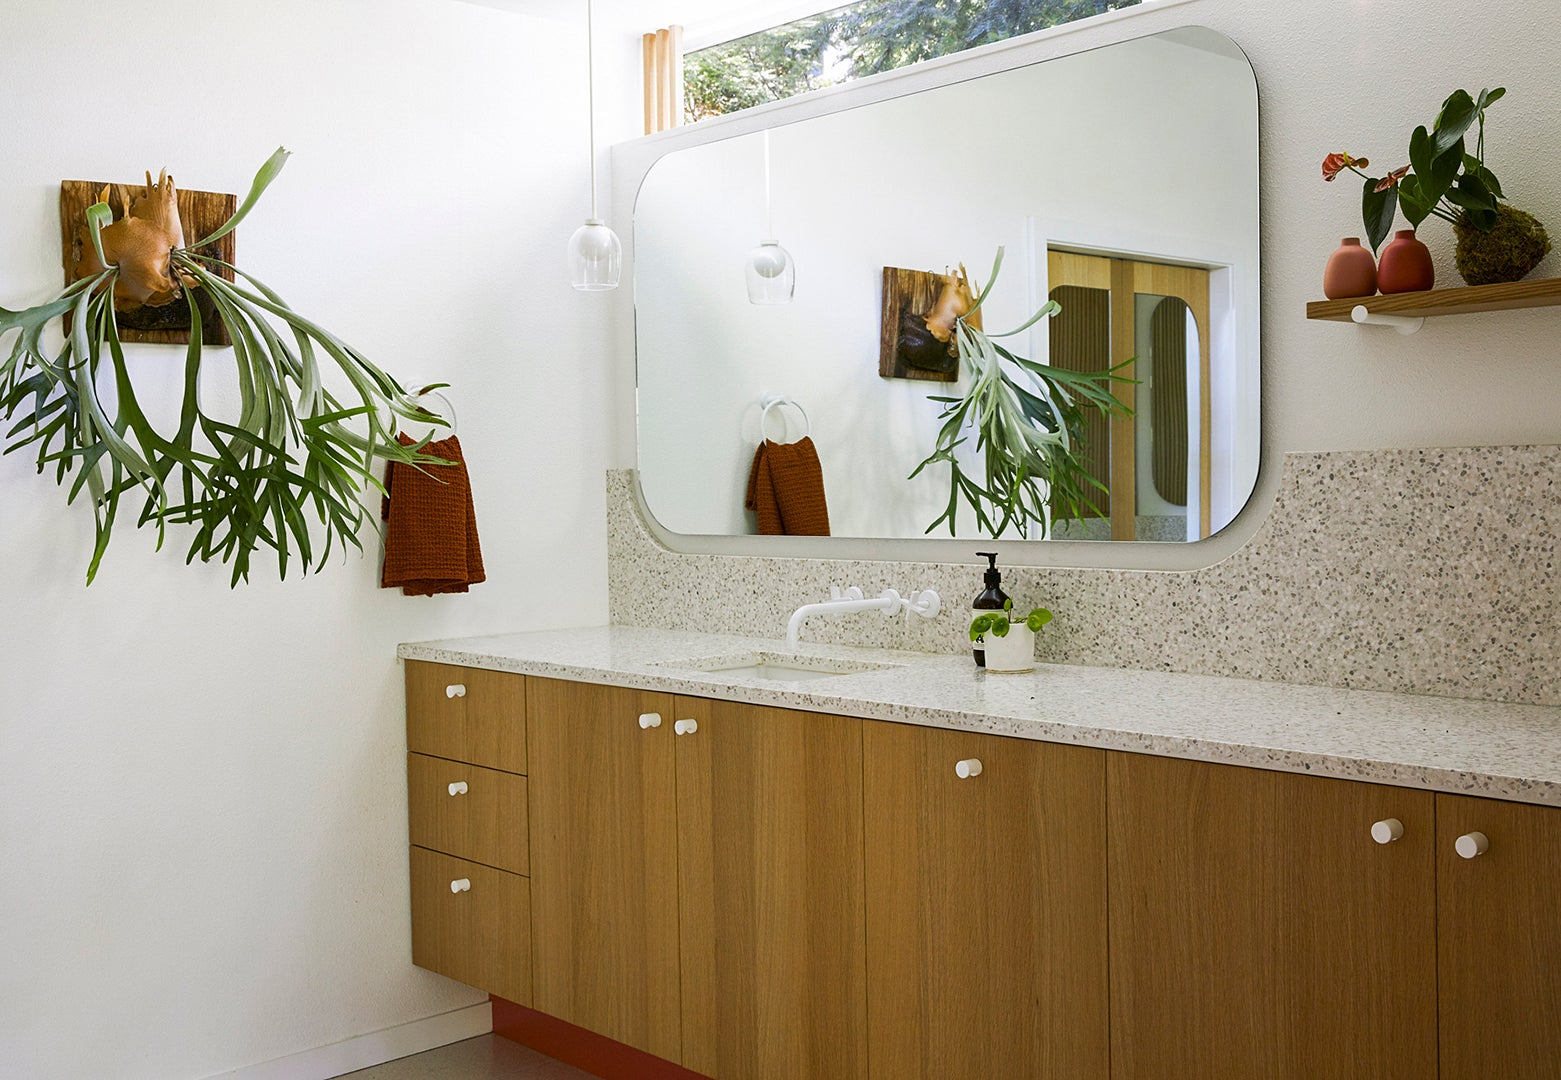 bathroom with plants and transom window